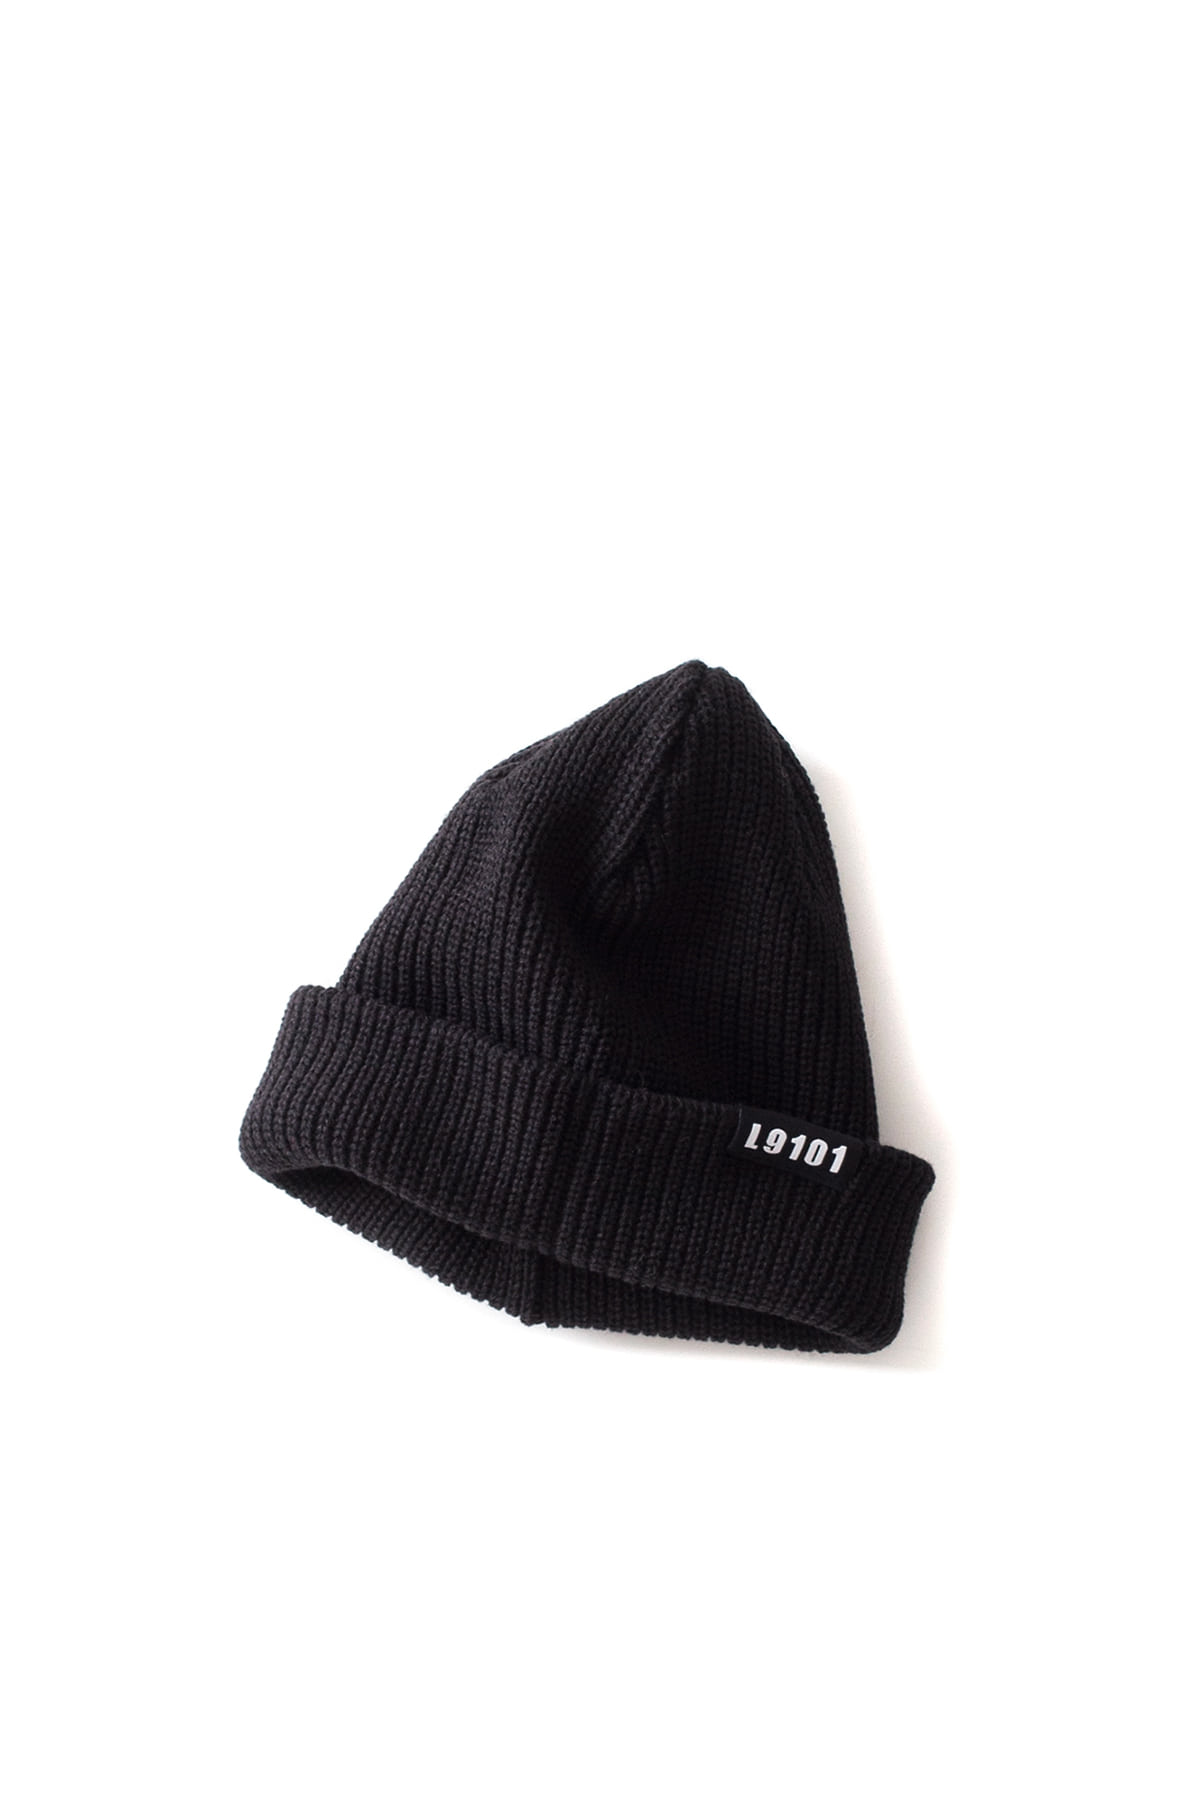 Labor Day : L9101 Beenie (Black)